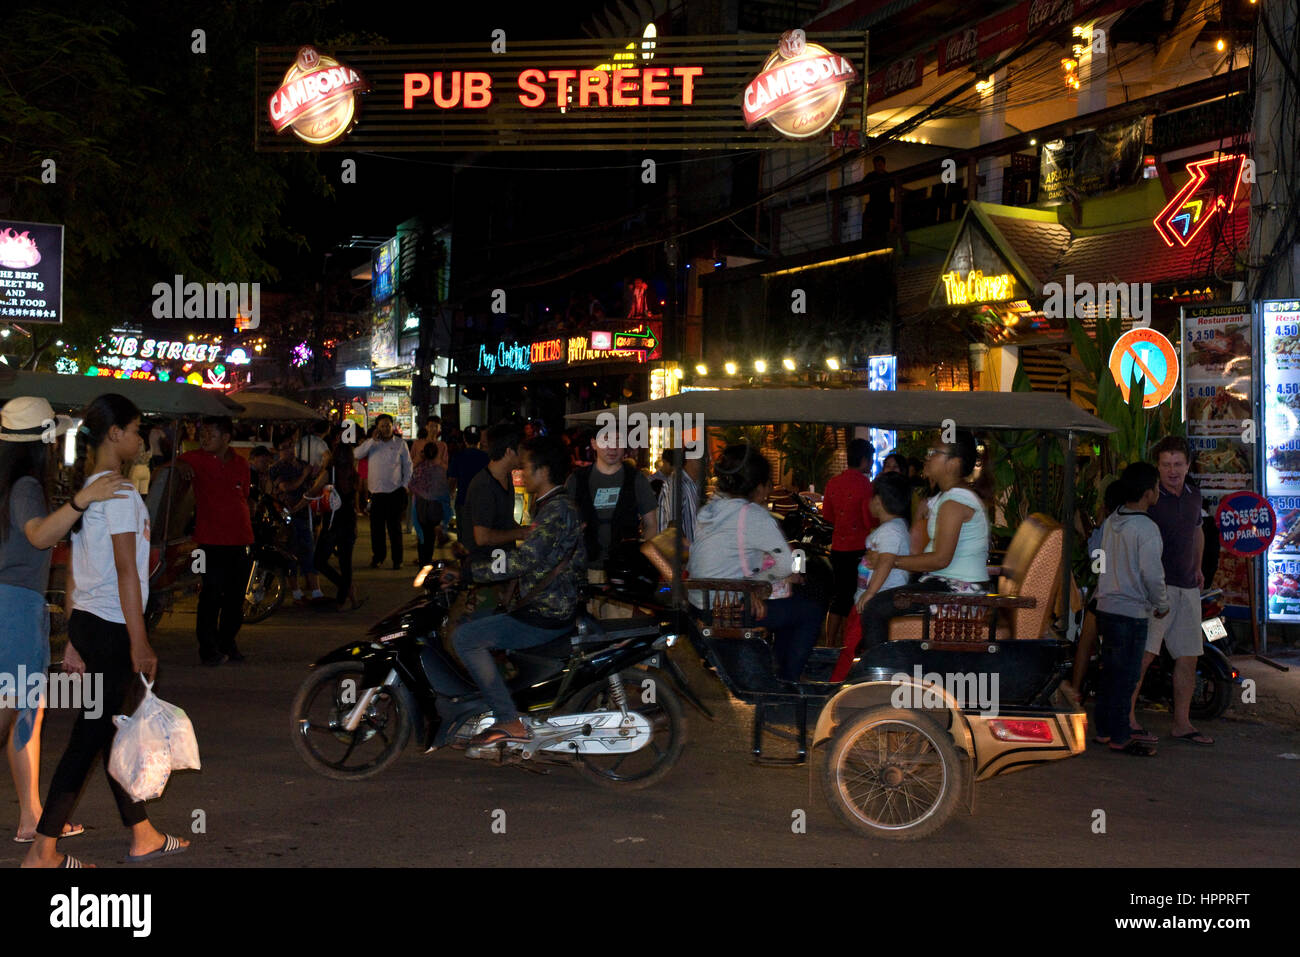 Busy street scene in Siem Reap, Cambodia, looking down 'Pub Street' with mopeds, locals, tourists and tuk - Stock Image